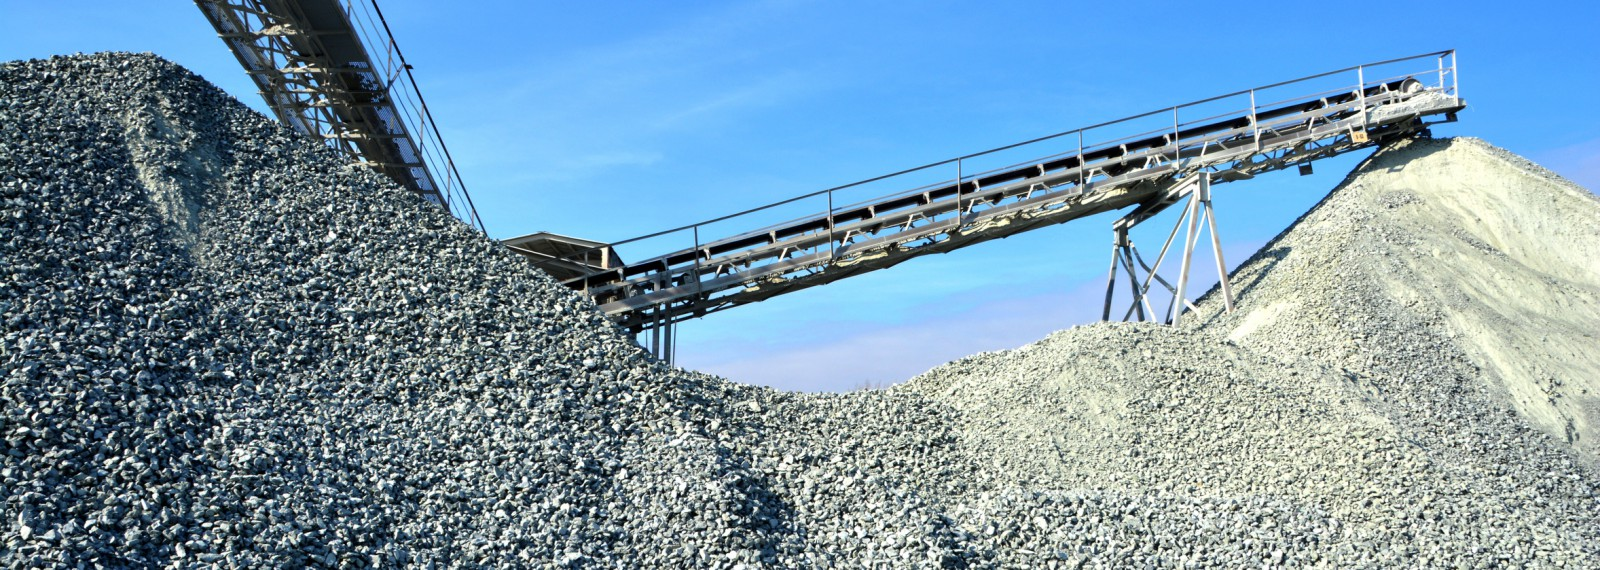 Heavy machinery of gravel production in quarry.